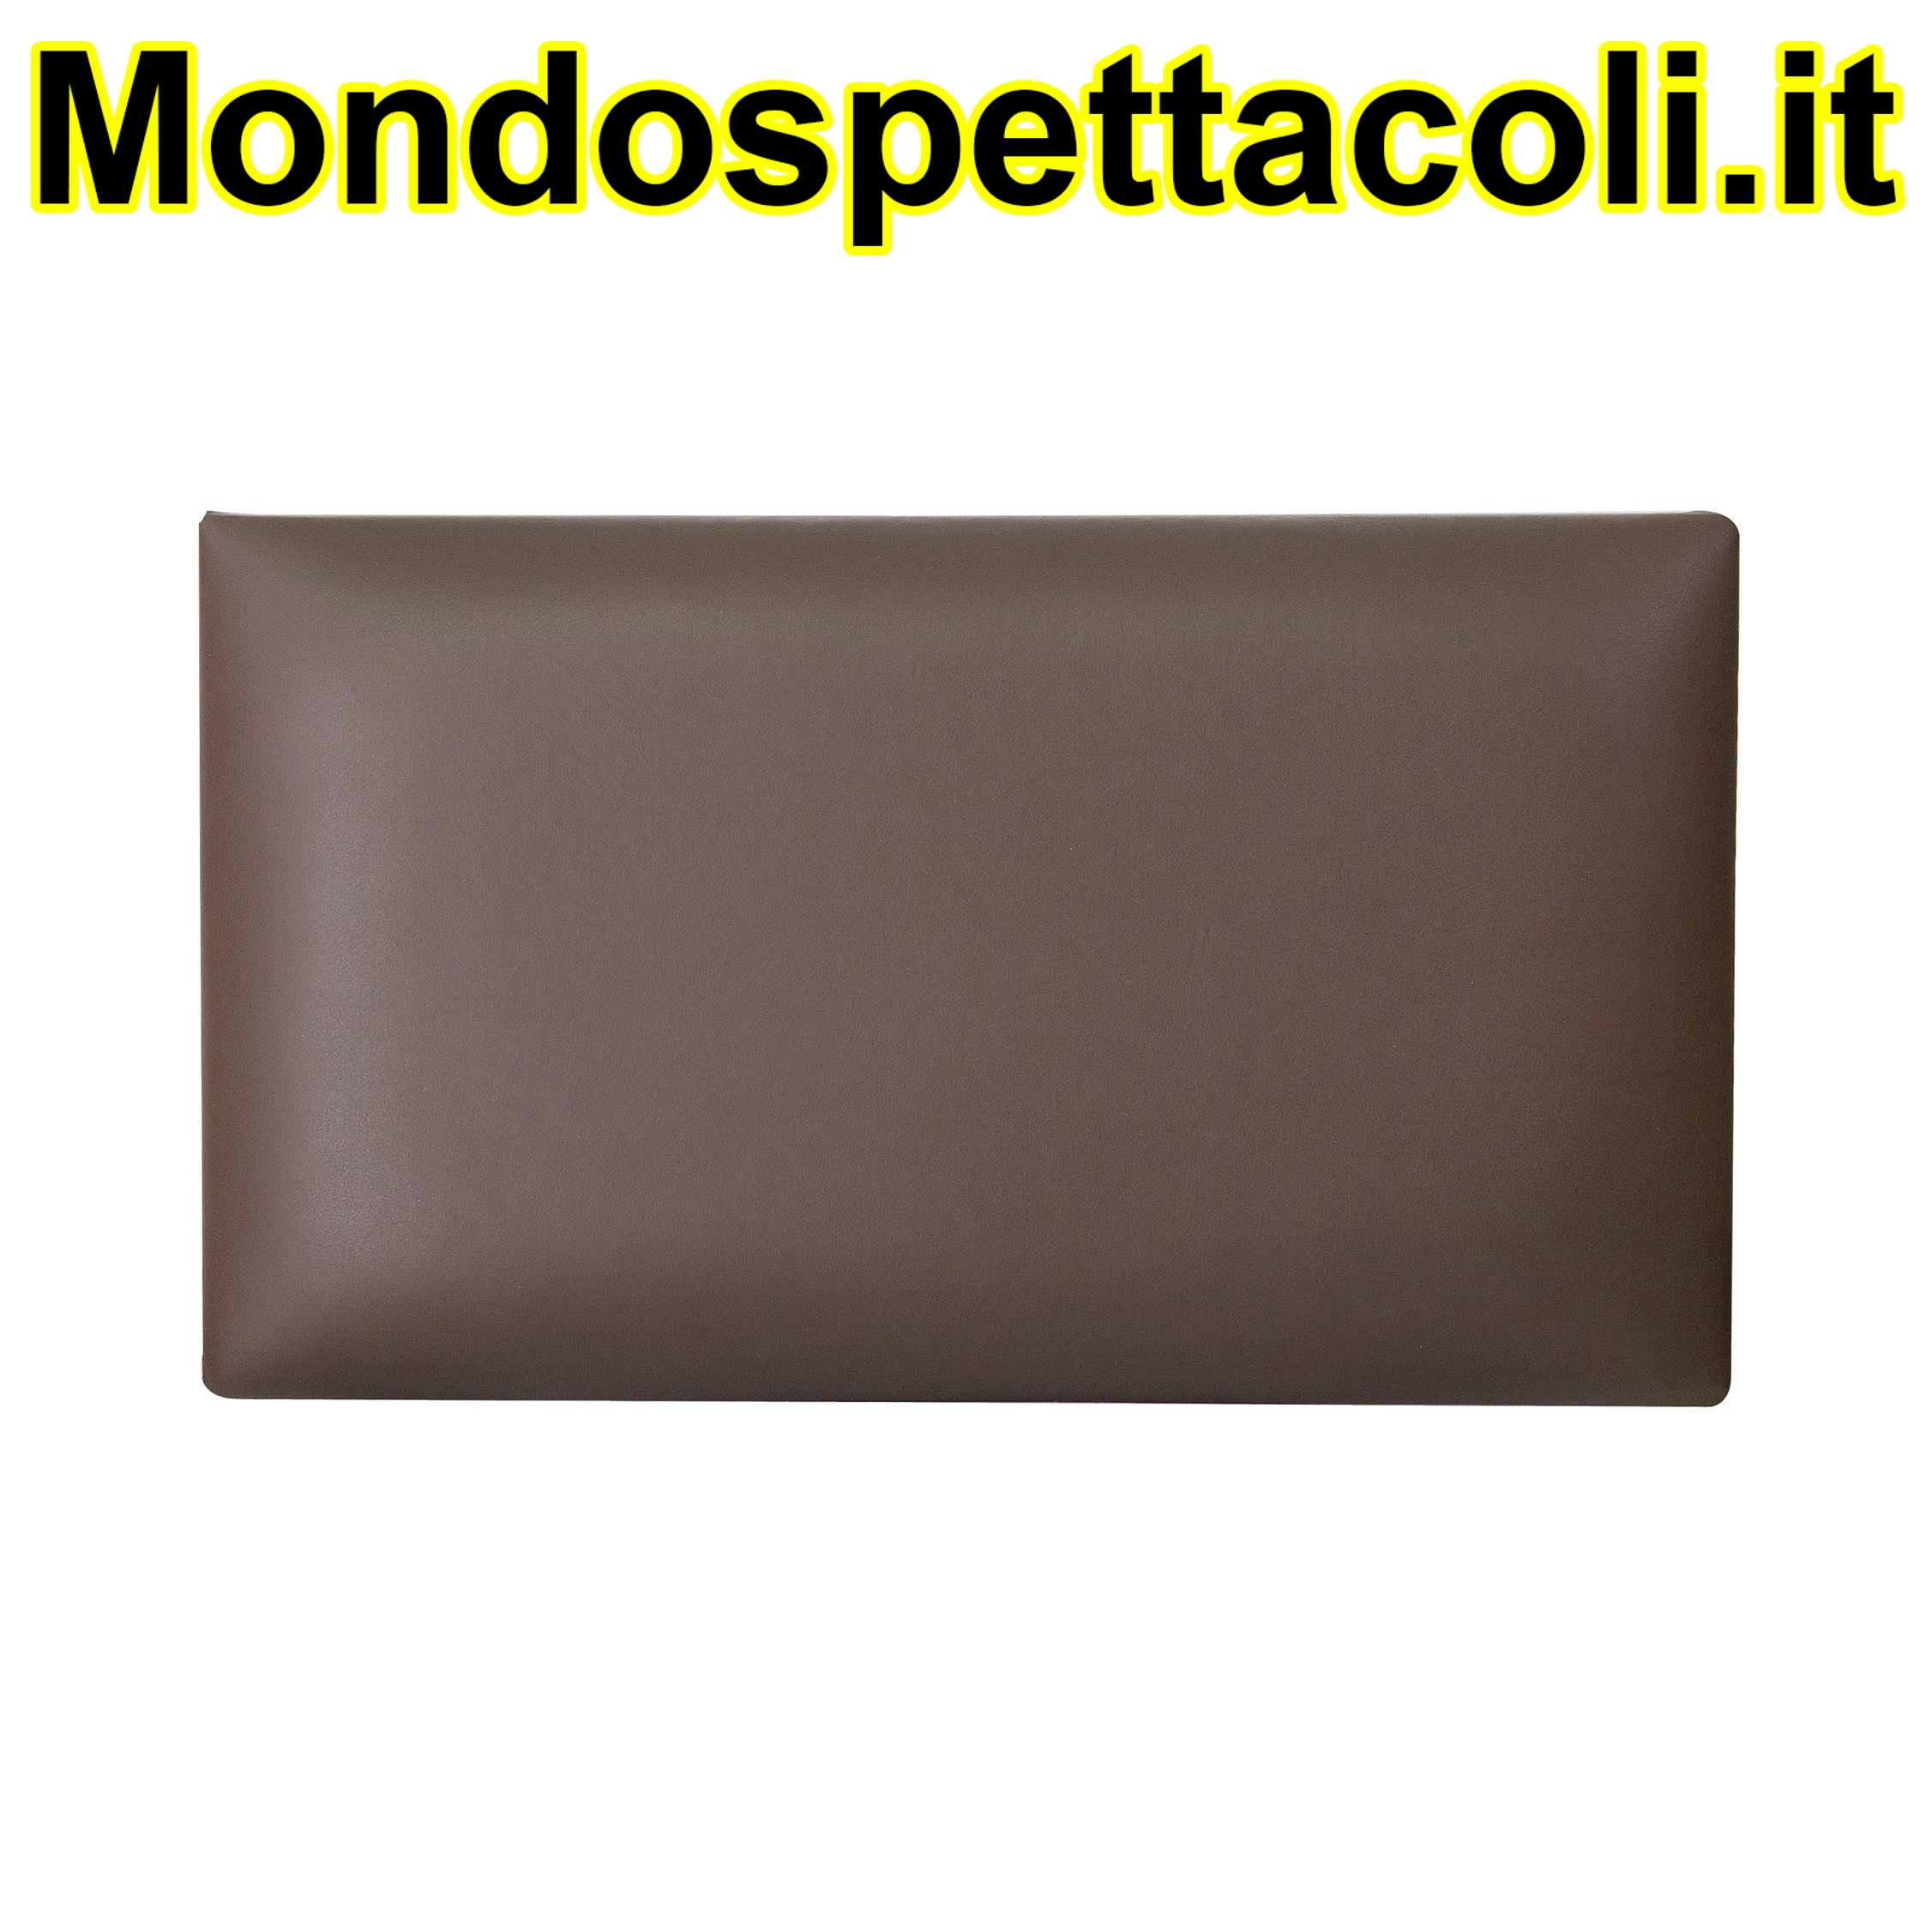 K&M brown Seat cushion - imitation leather 13821-201-00